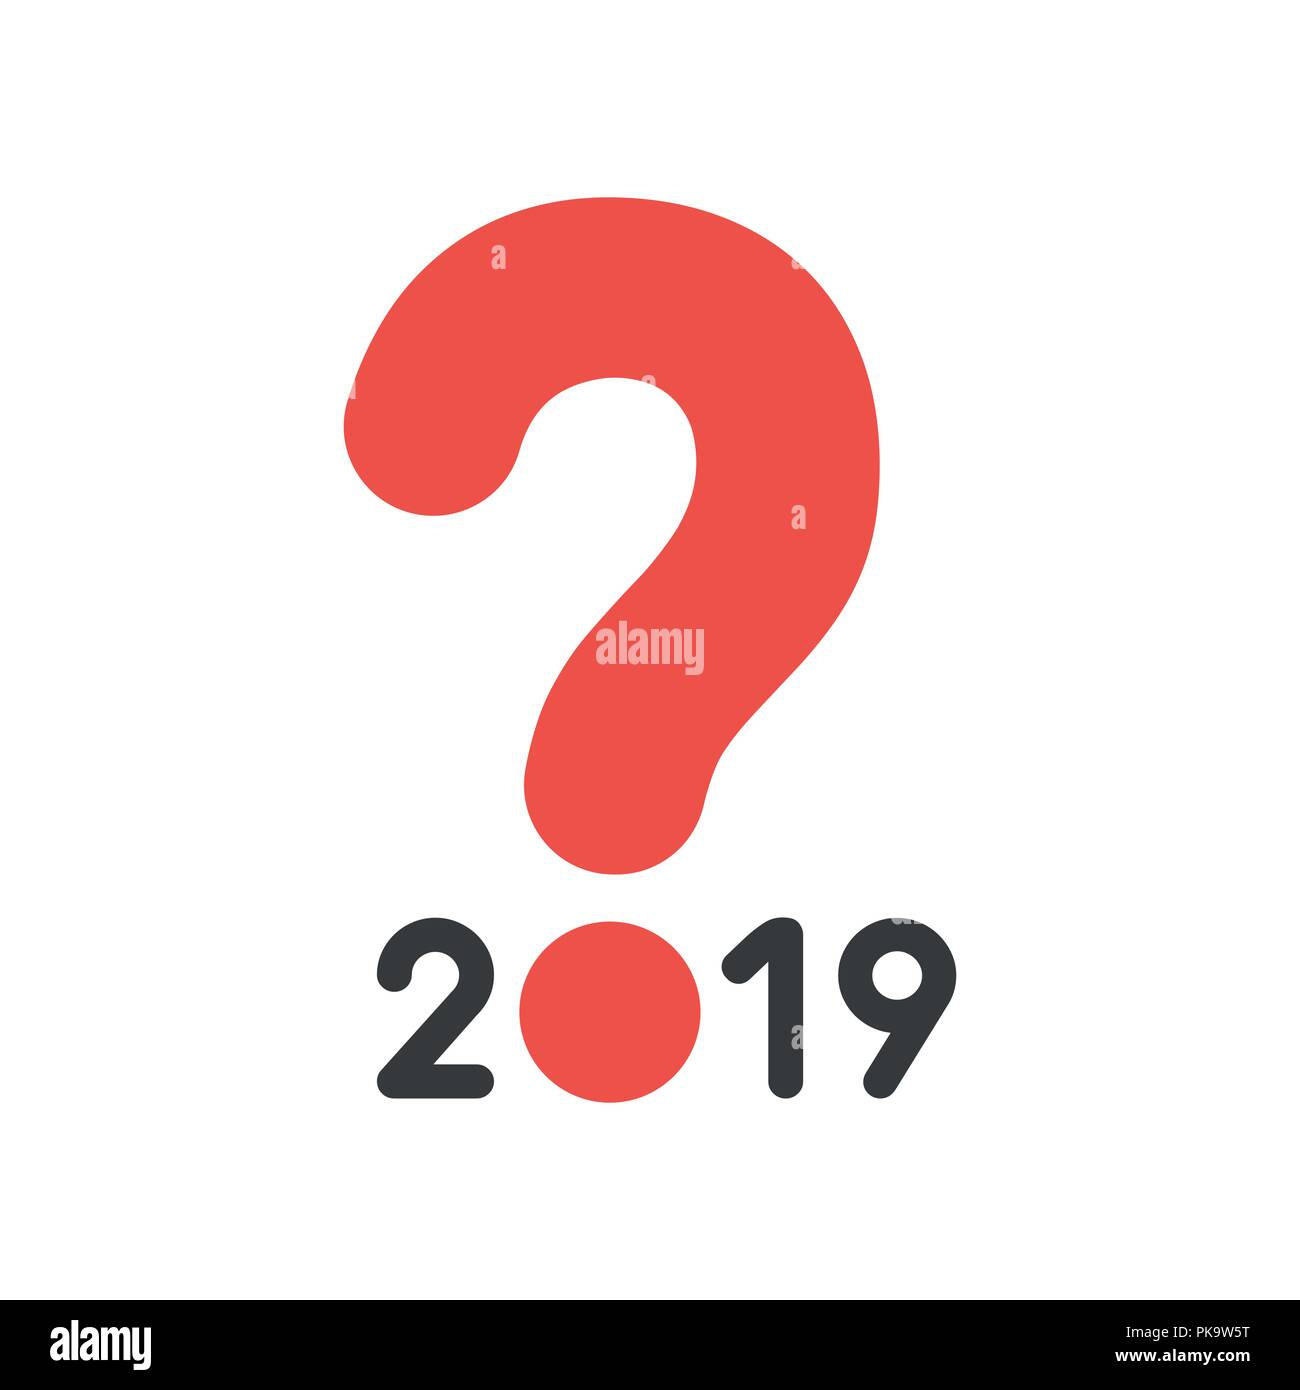 Vector illustration icon concept of year of 2019 with question mark. - Stock Image